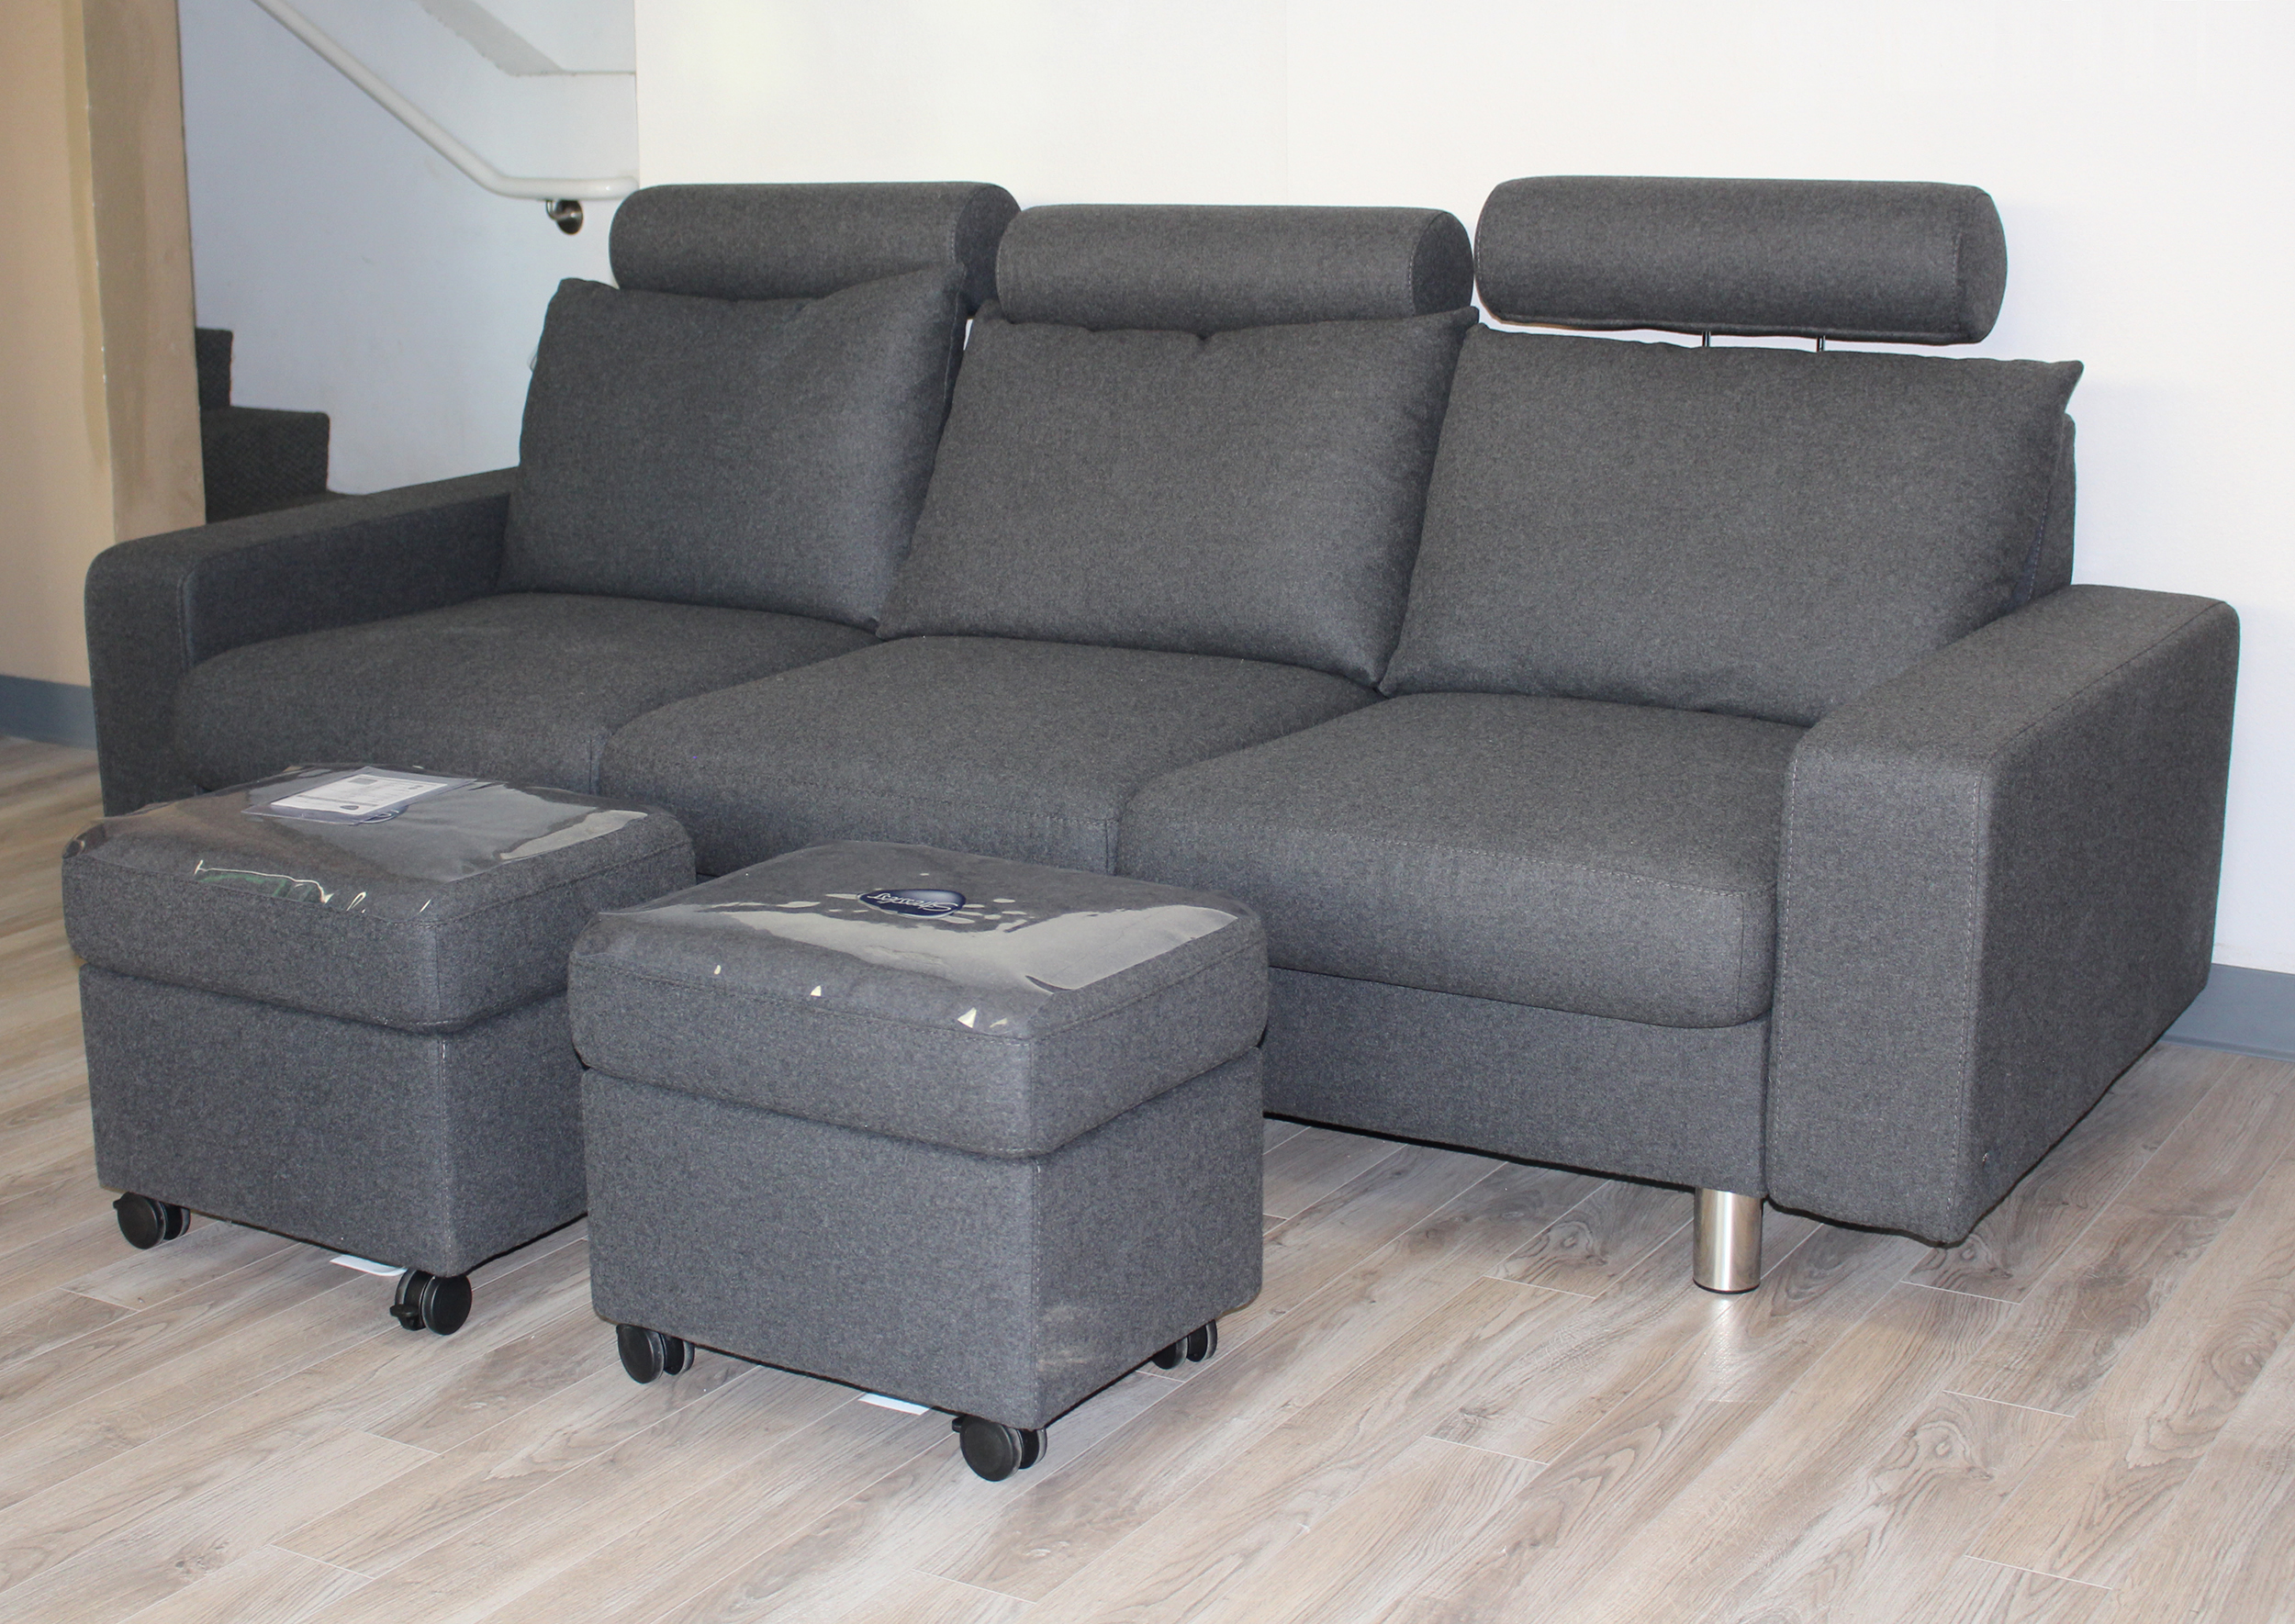 stressless e200 3 seat sofa in calido dark grey fabric by. Black Bedroom Furniture Sets. Home Design Ideas